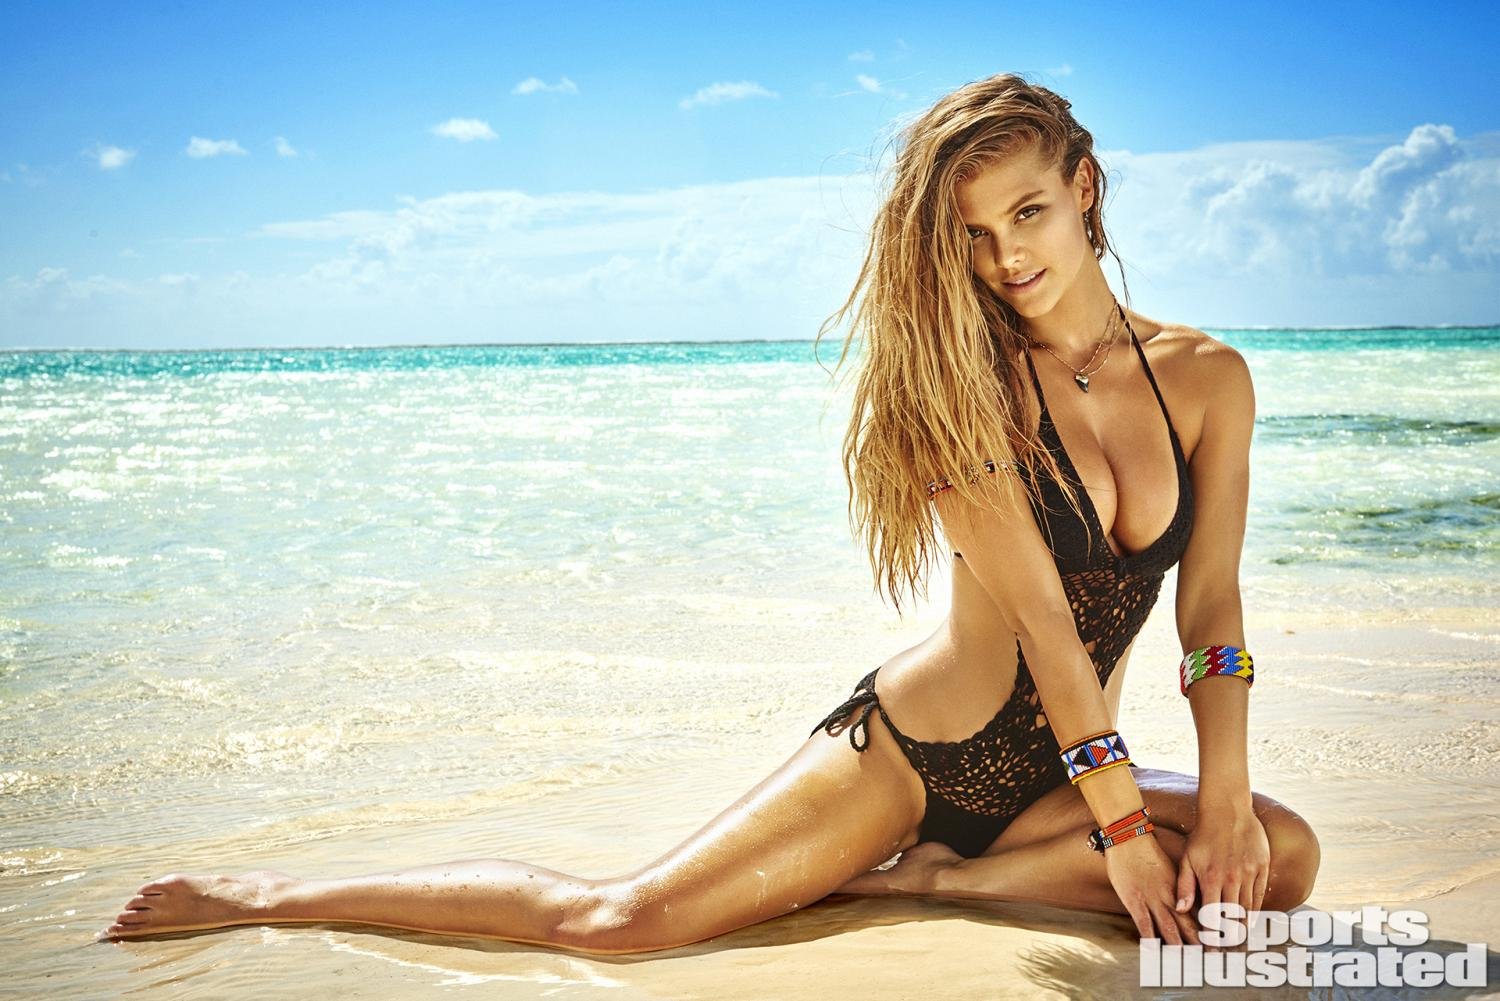 Nina Agdal was photographed by Ruven Afanador in Zanzibar. Swimsuit by Beauty & The Beach.